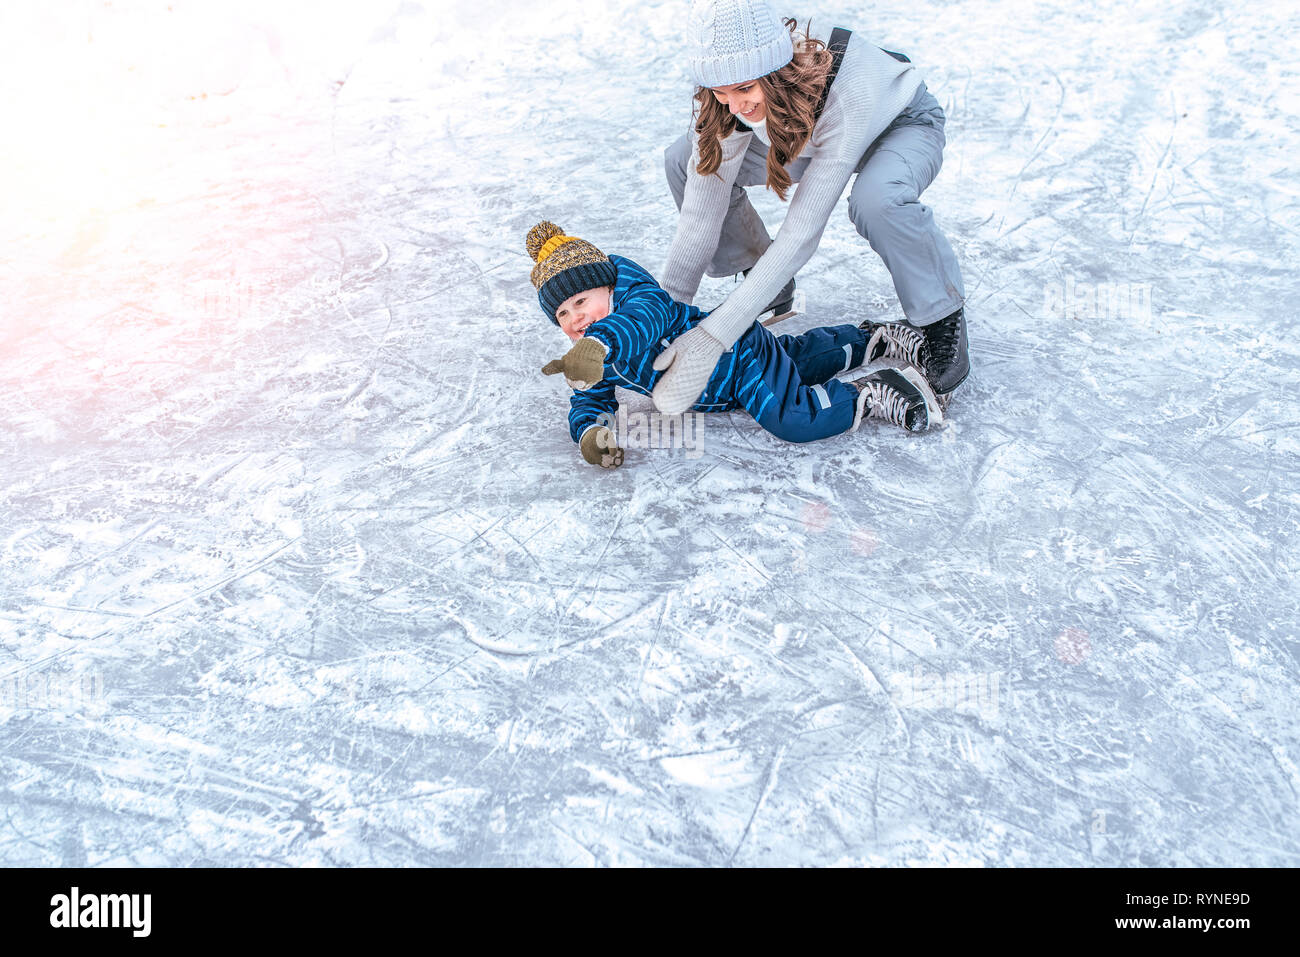 The baby fell on the ice. A young mother skates in the park in winter, with her son a young child 3-5 years old. Weekend rest at a public skating rink - Stock Image